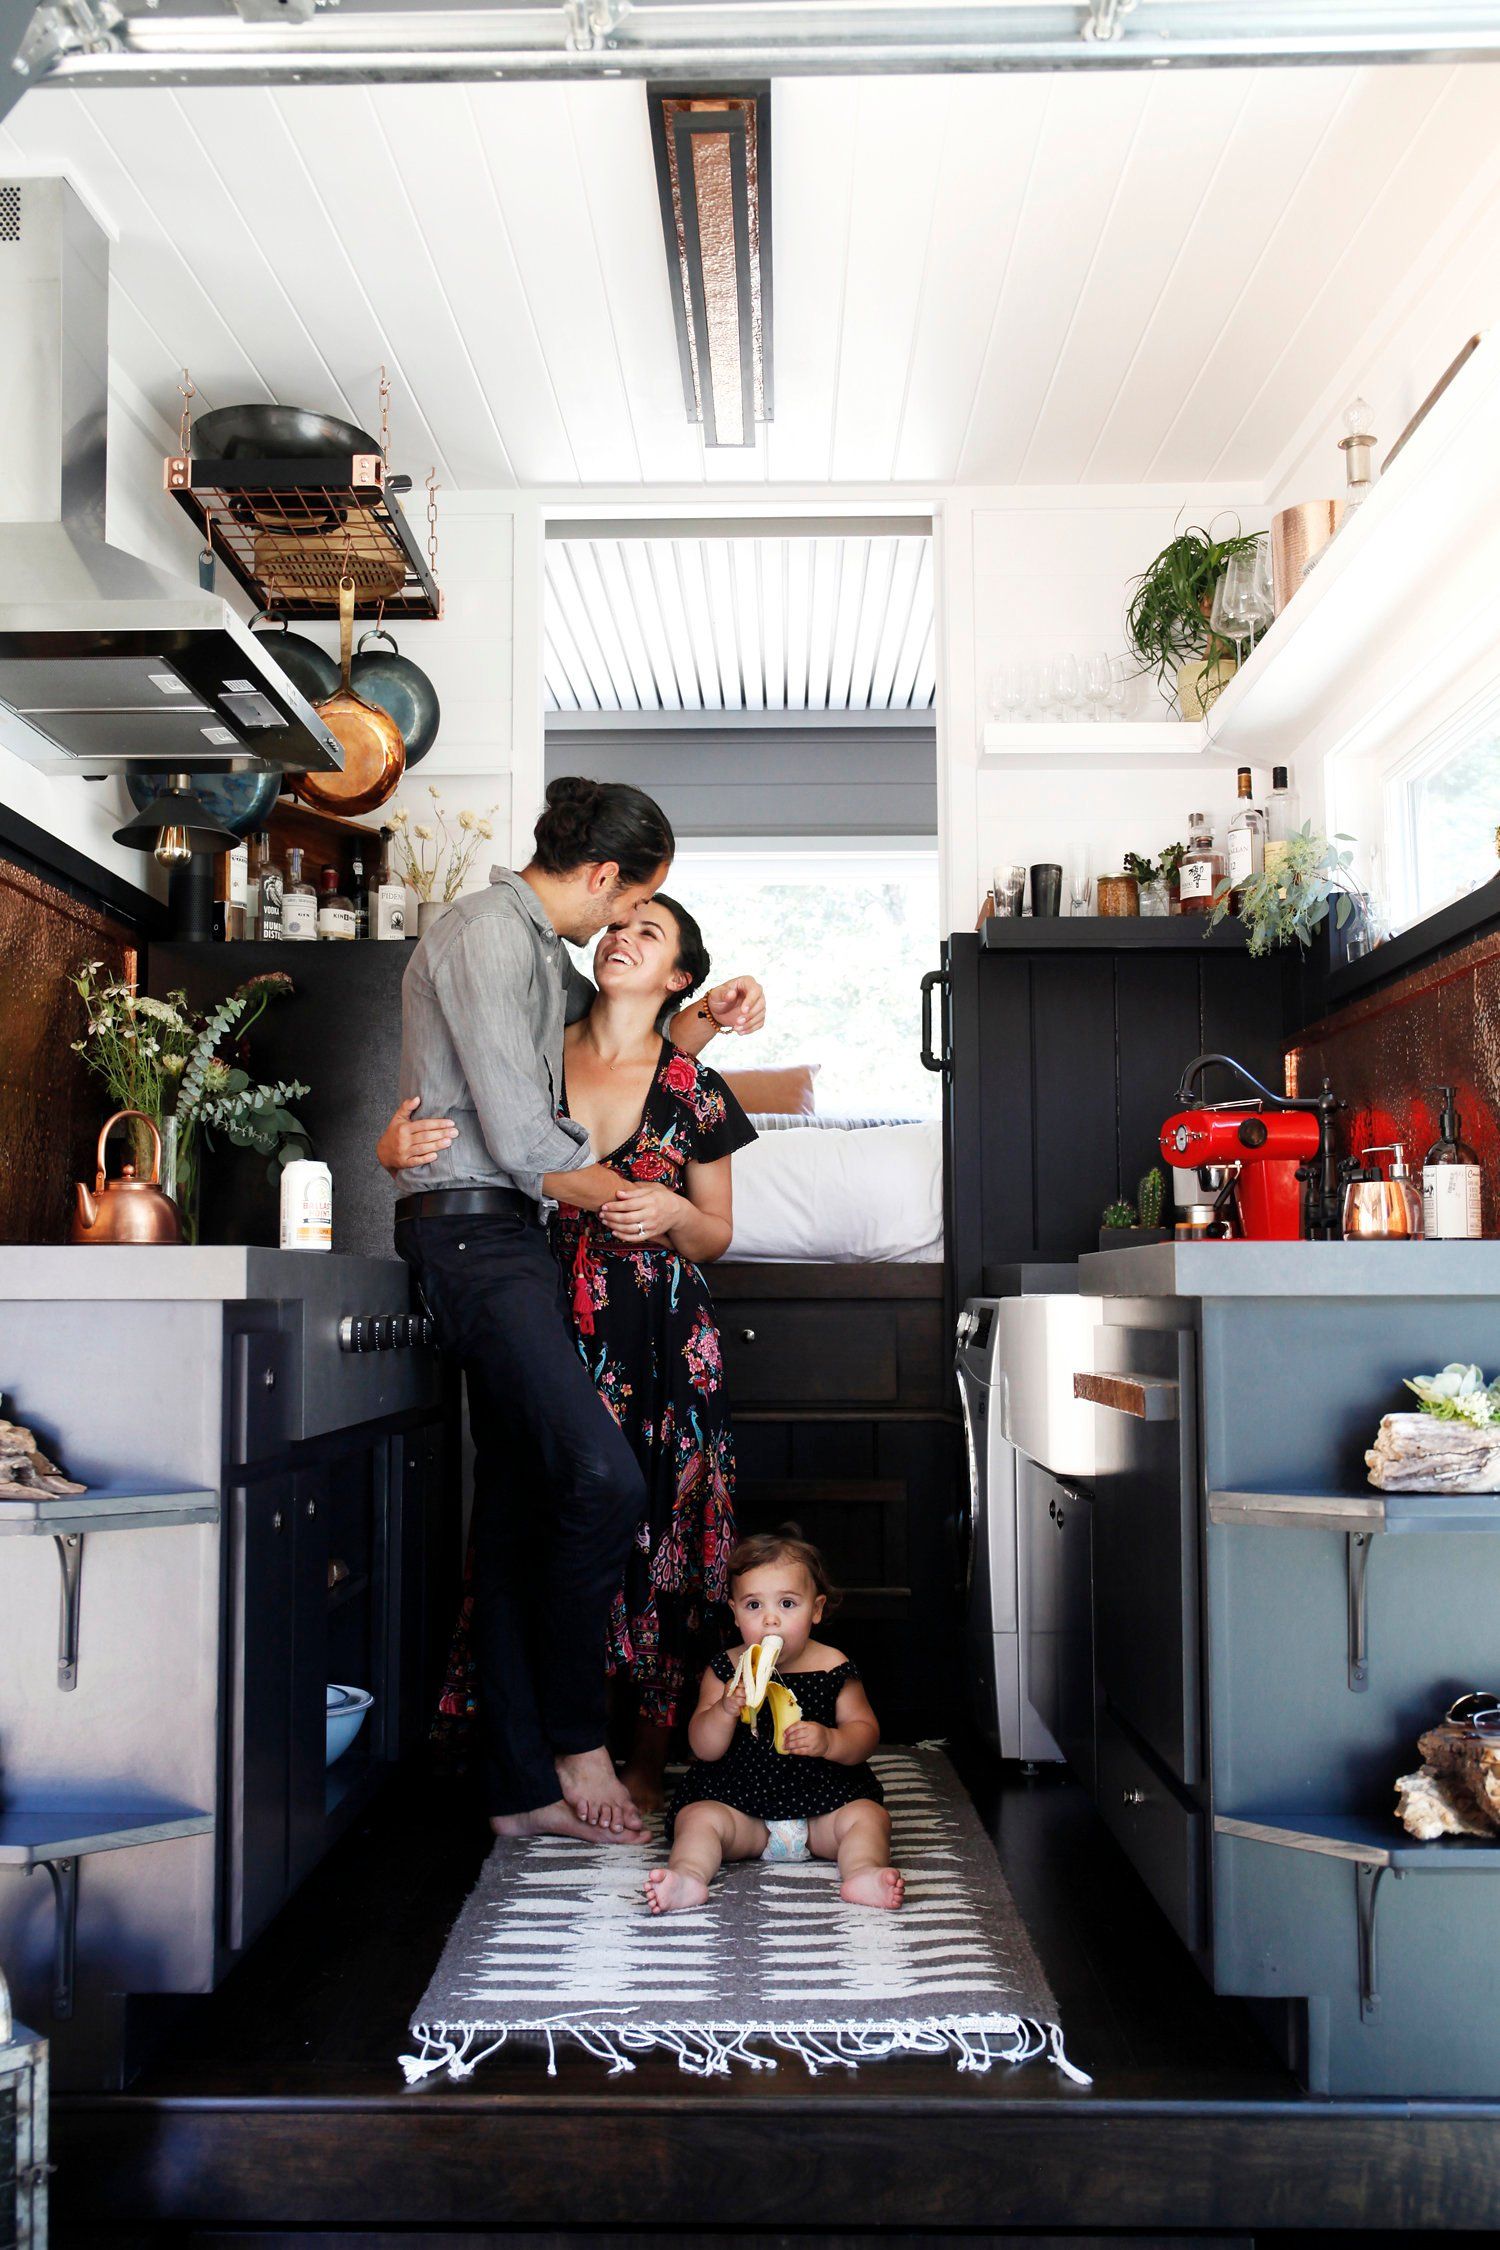 A 300-Square-Foot Tiny House in California   A Cup of Jo on tiny house 500 sq ft, tiny house book, tiny cottage house plans, furniture design google, molecule tiny homes google, bathroom design google,